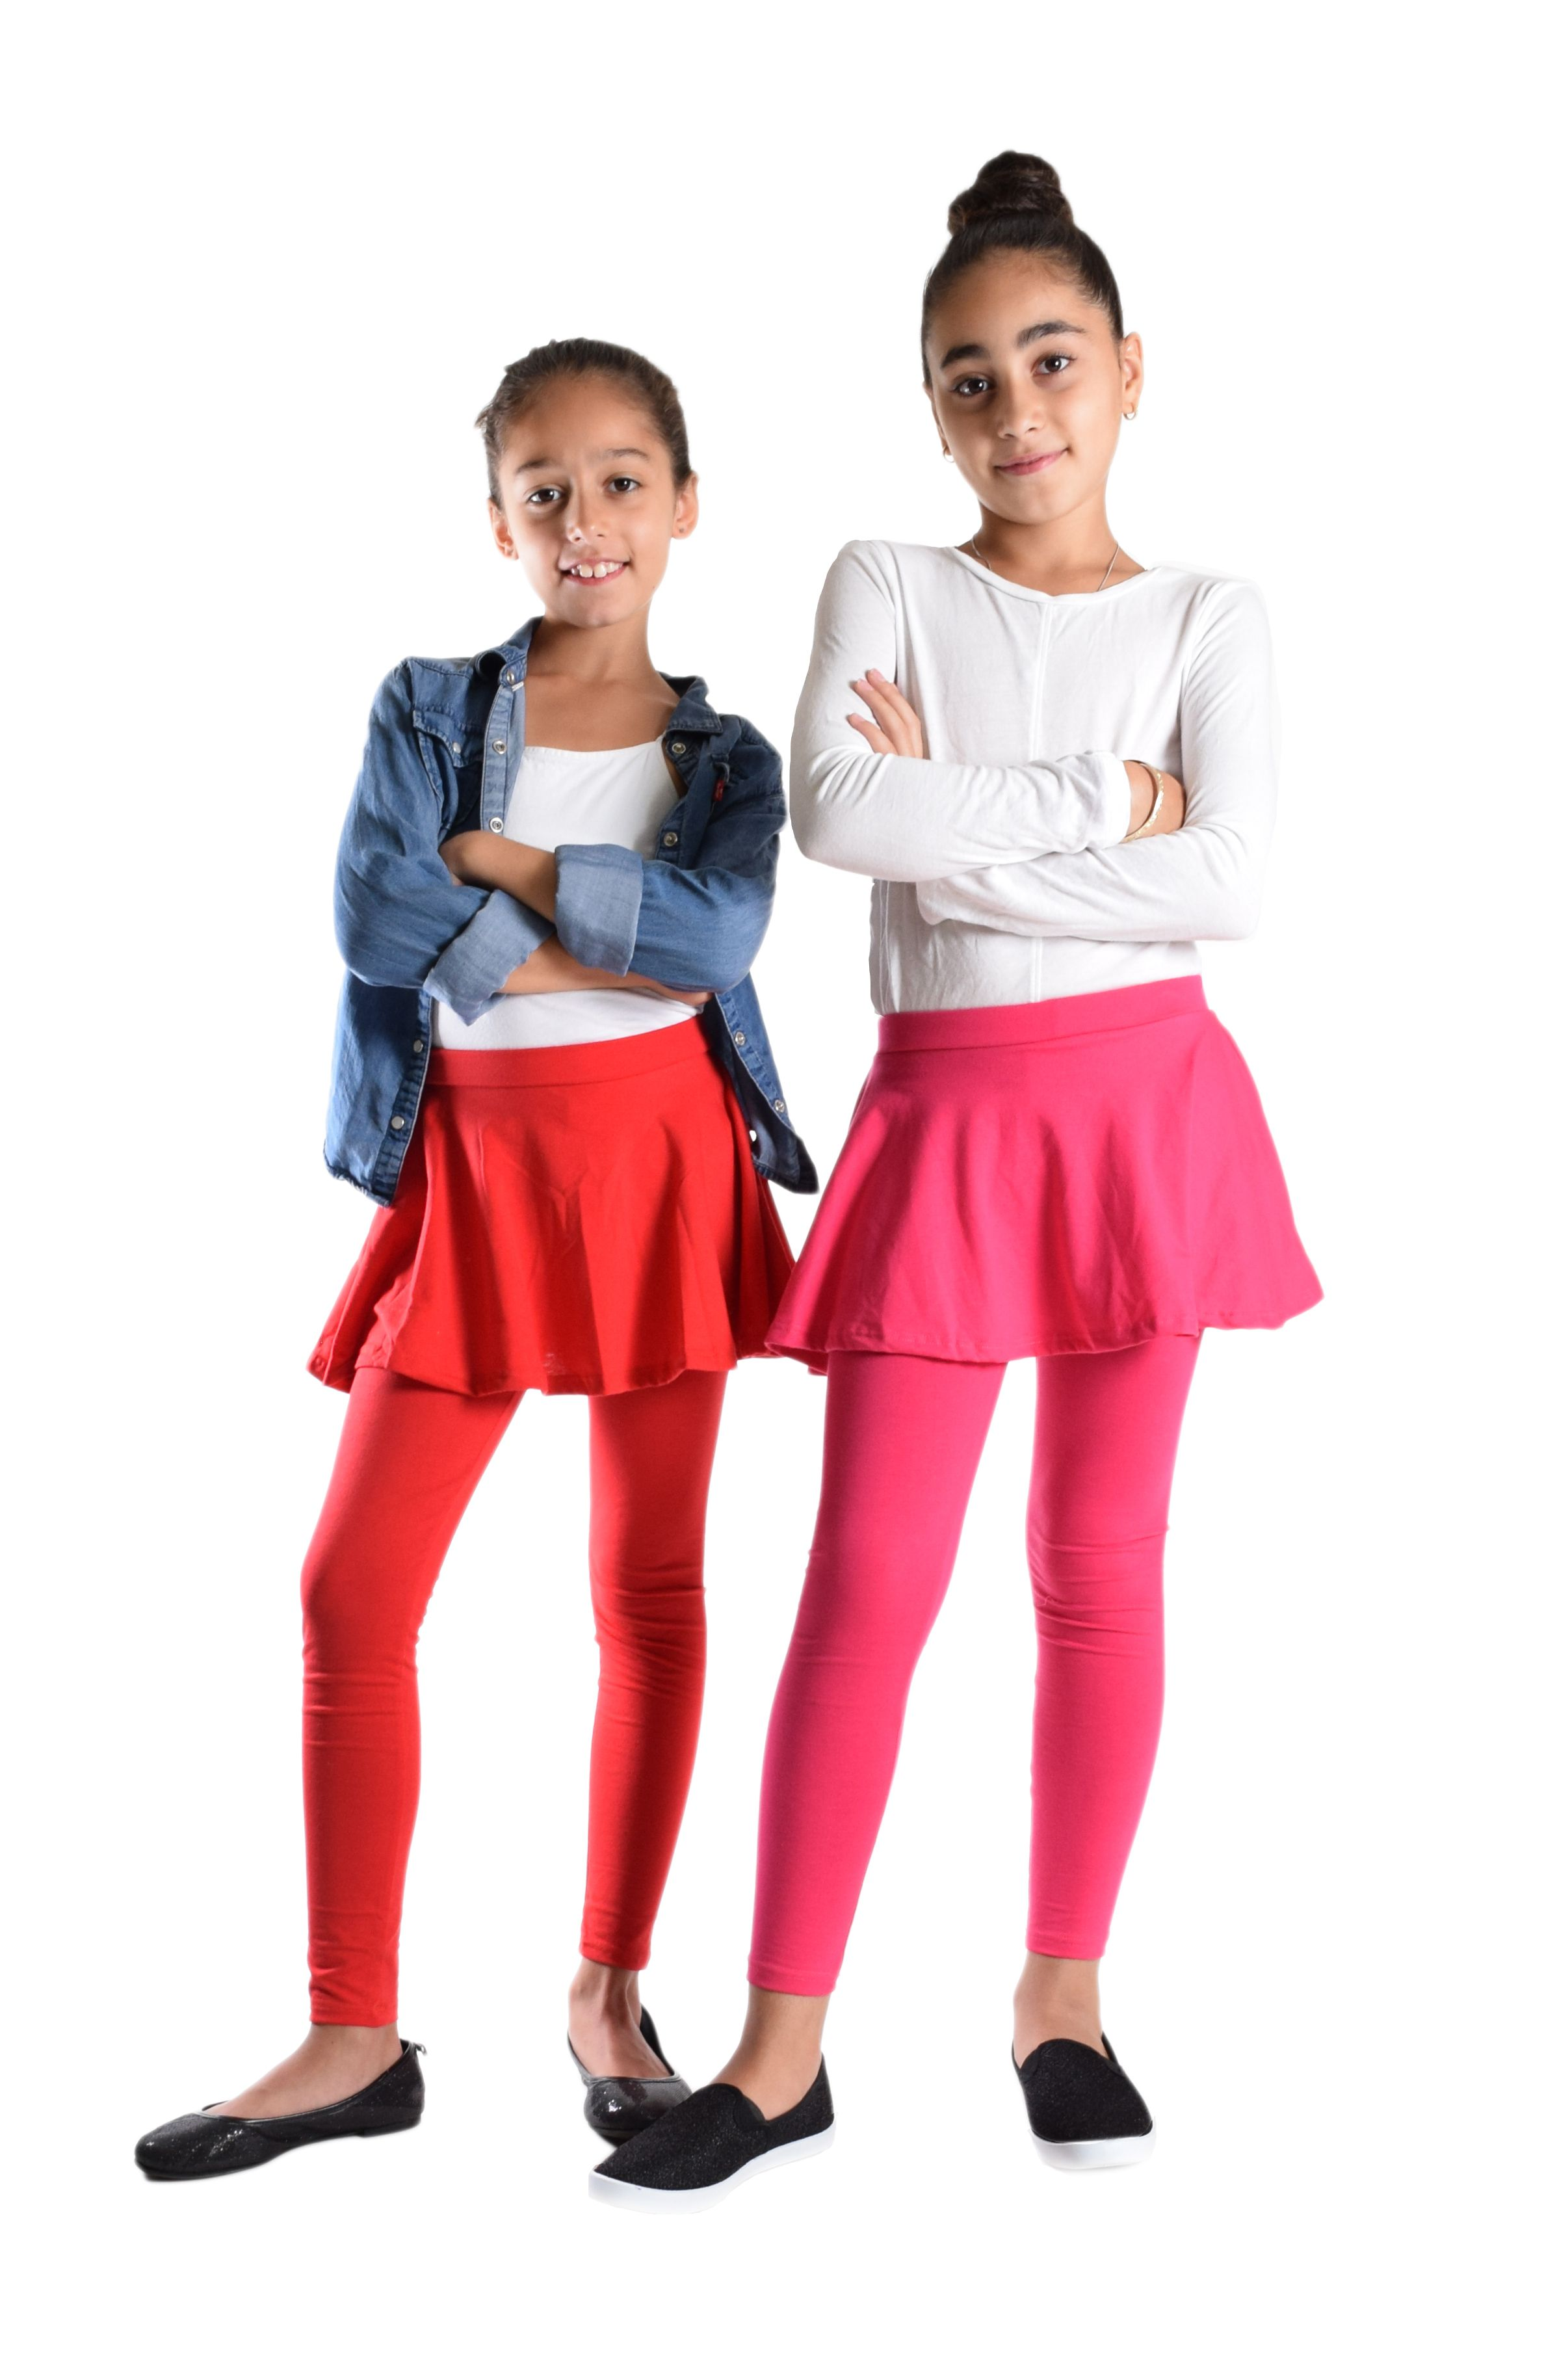 b79f8a032ba66 NewMarkdow in #GirlsFashion. Girls Solid Color #Skirted Leggings ...